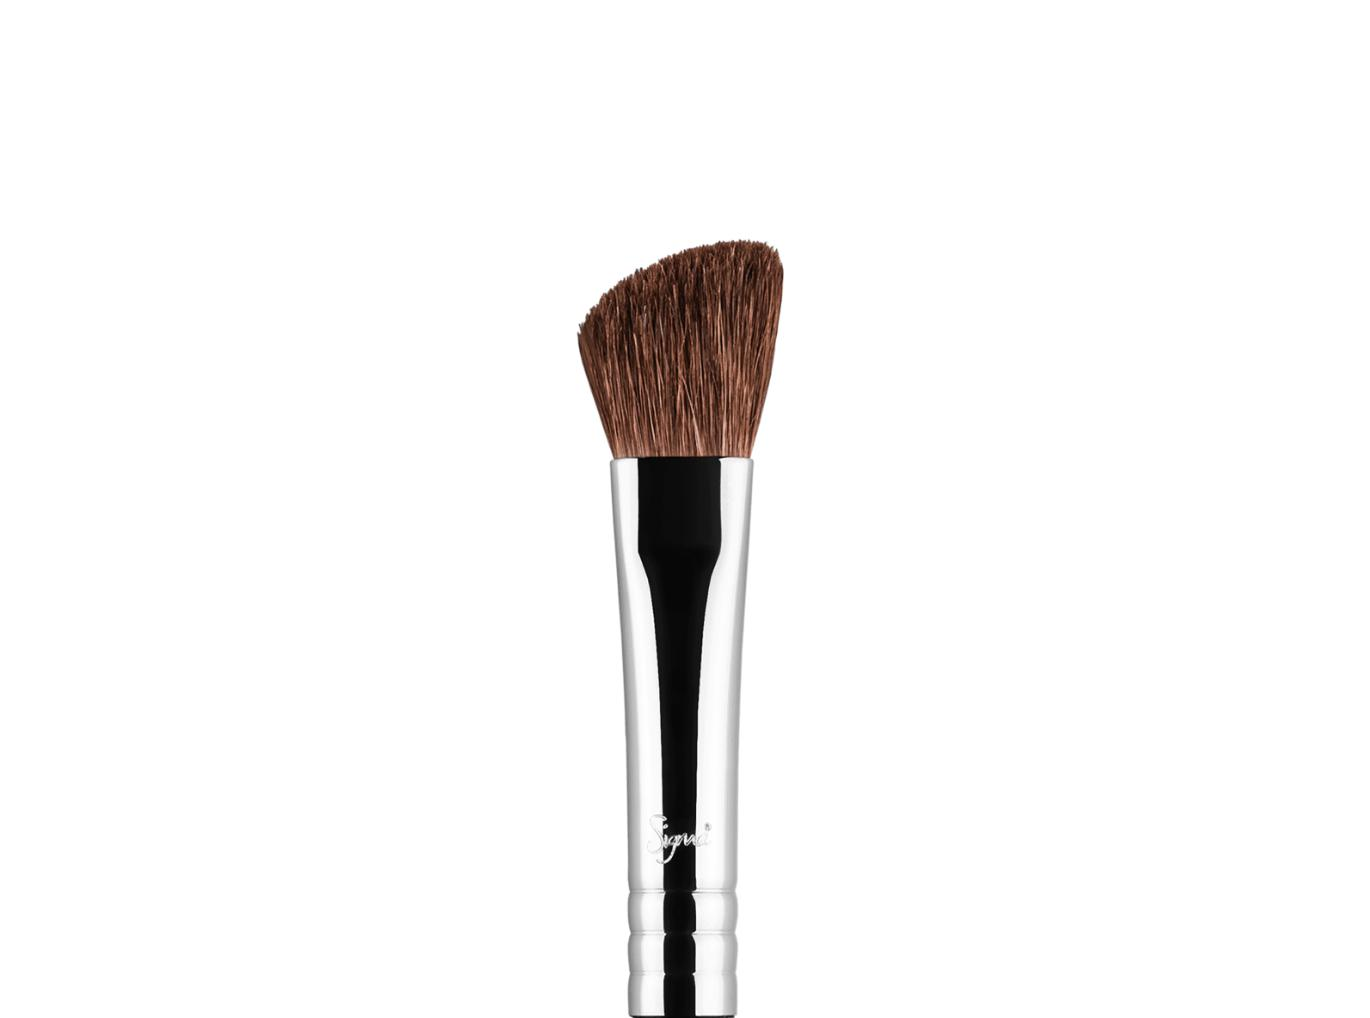 Sigma Medium Angled Shading Eye Brush E70 Matte Black Handle